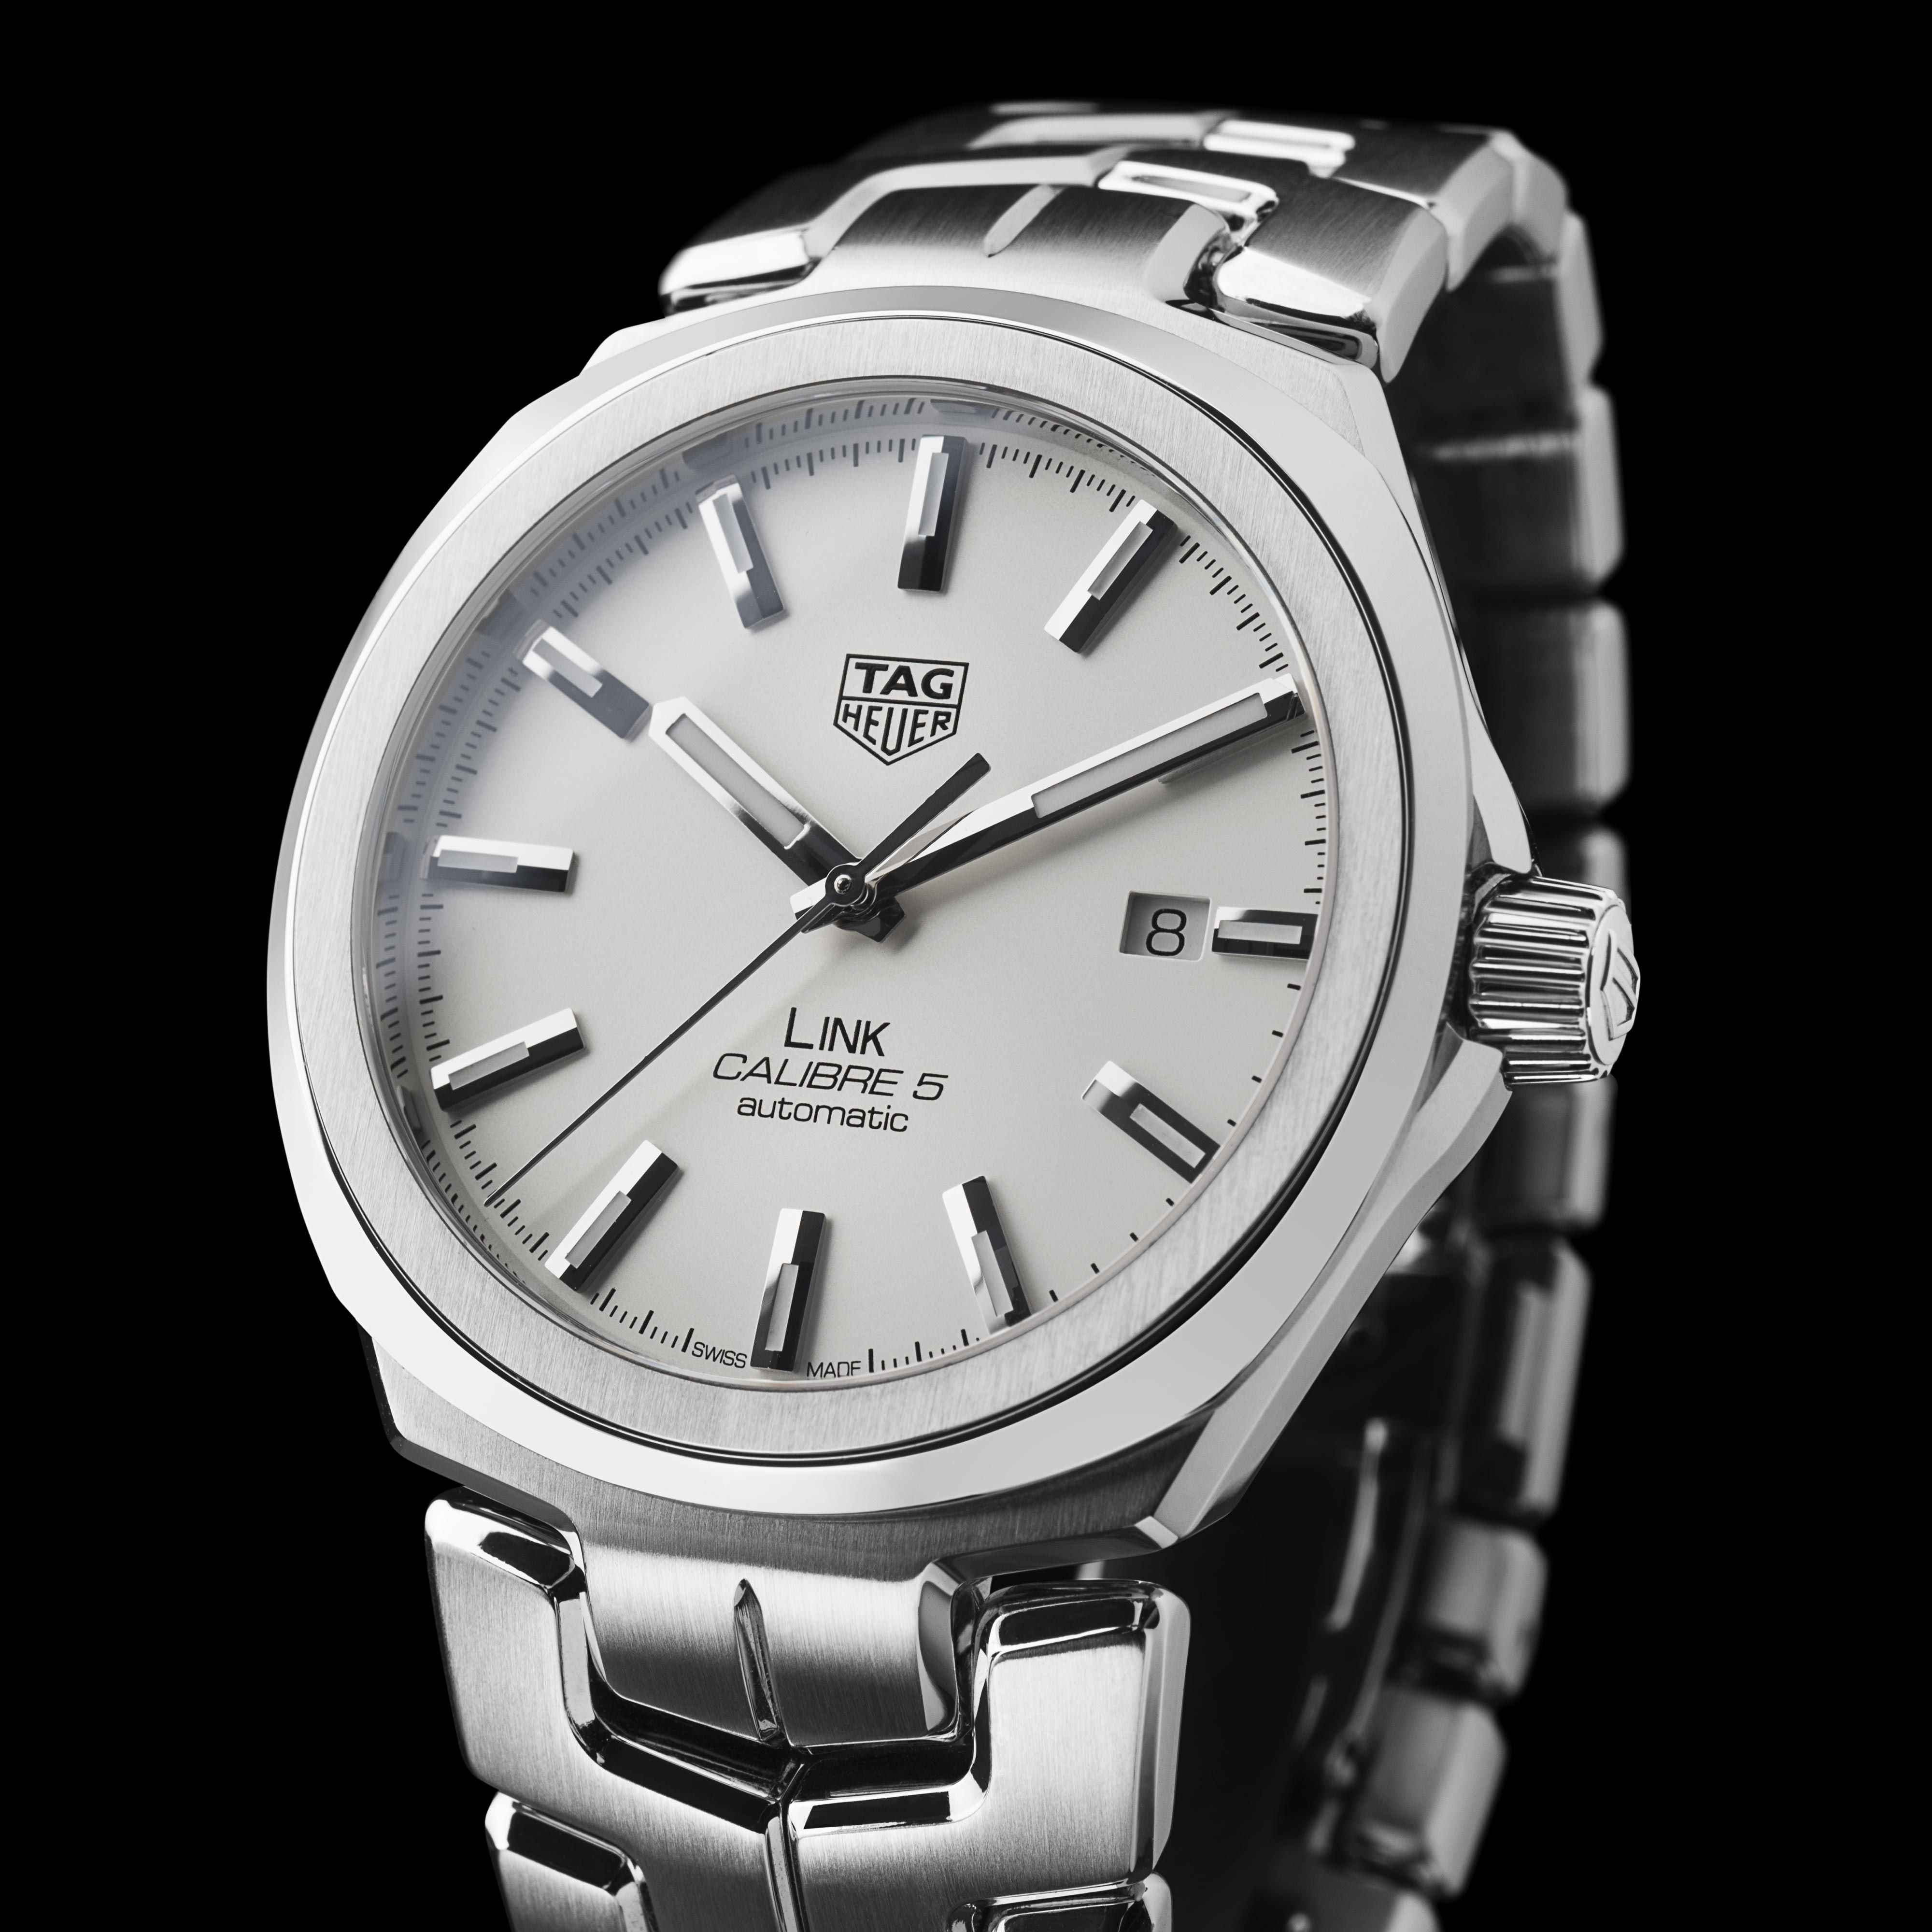 TAG HEUER LINK Calibre 5 | Men's style | Tag heuer ...